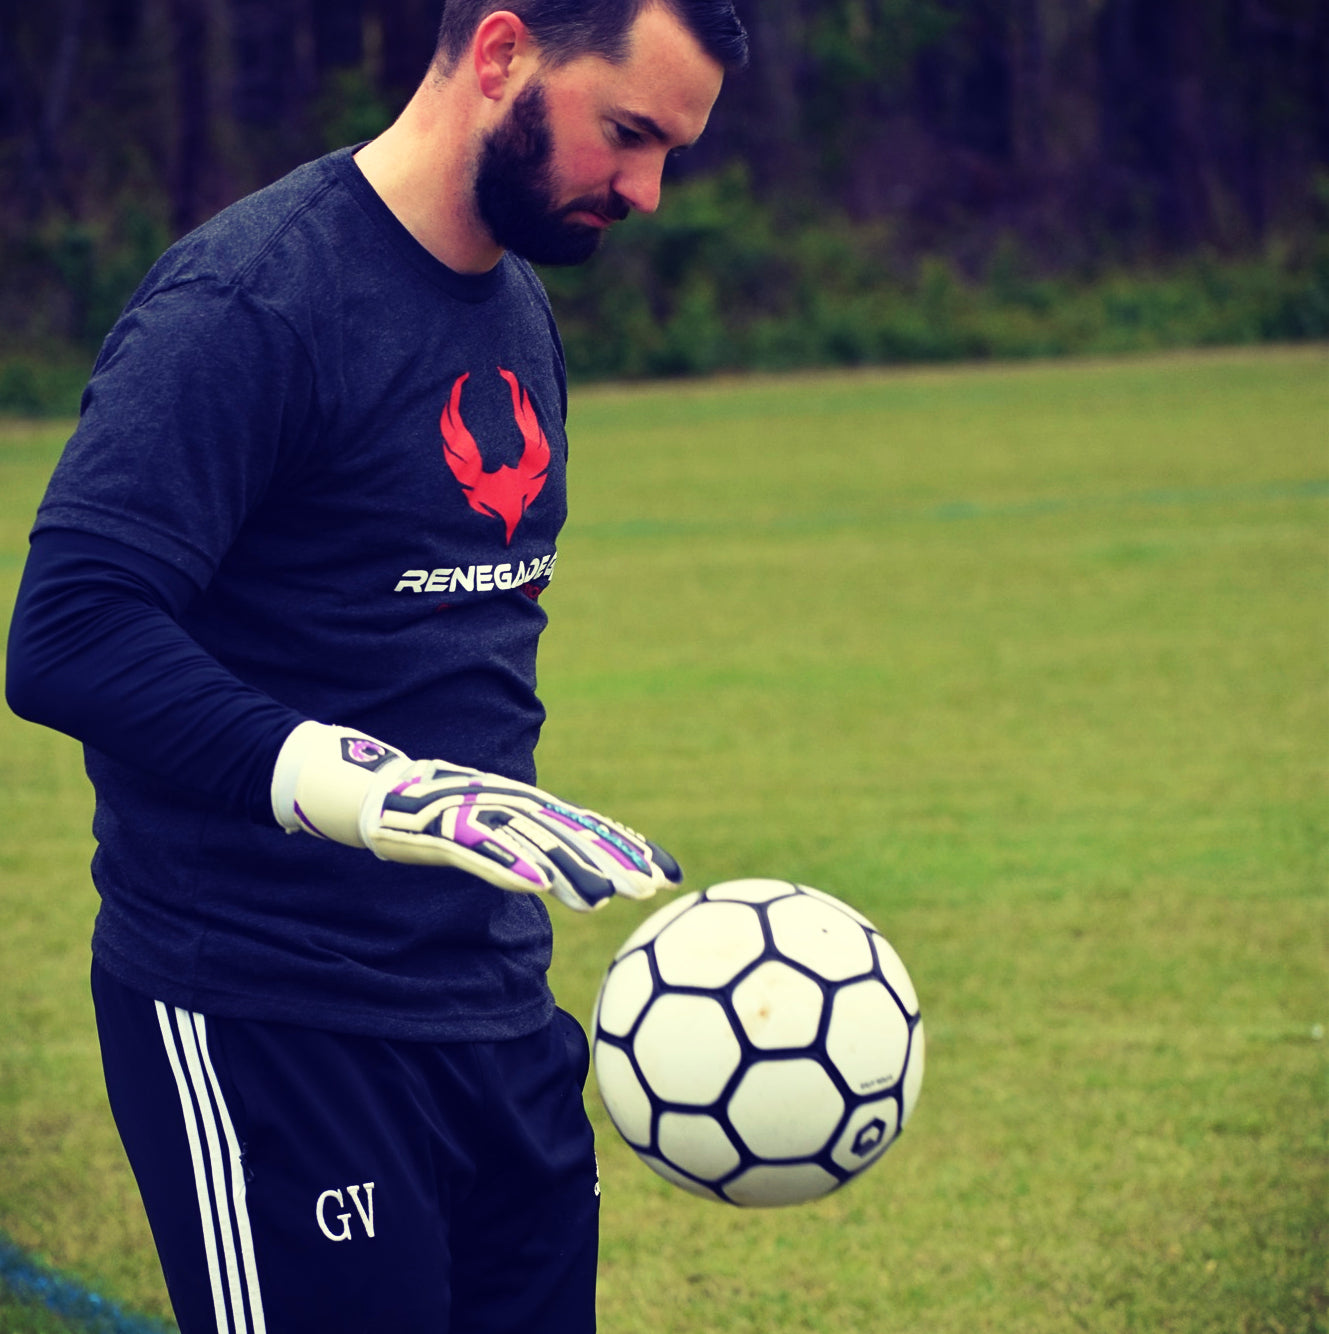 The Real Reasons Why You're Not Improving as a Keeper